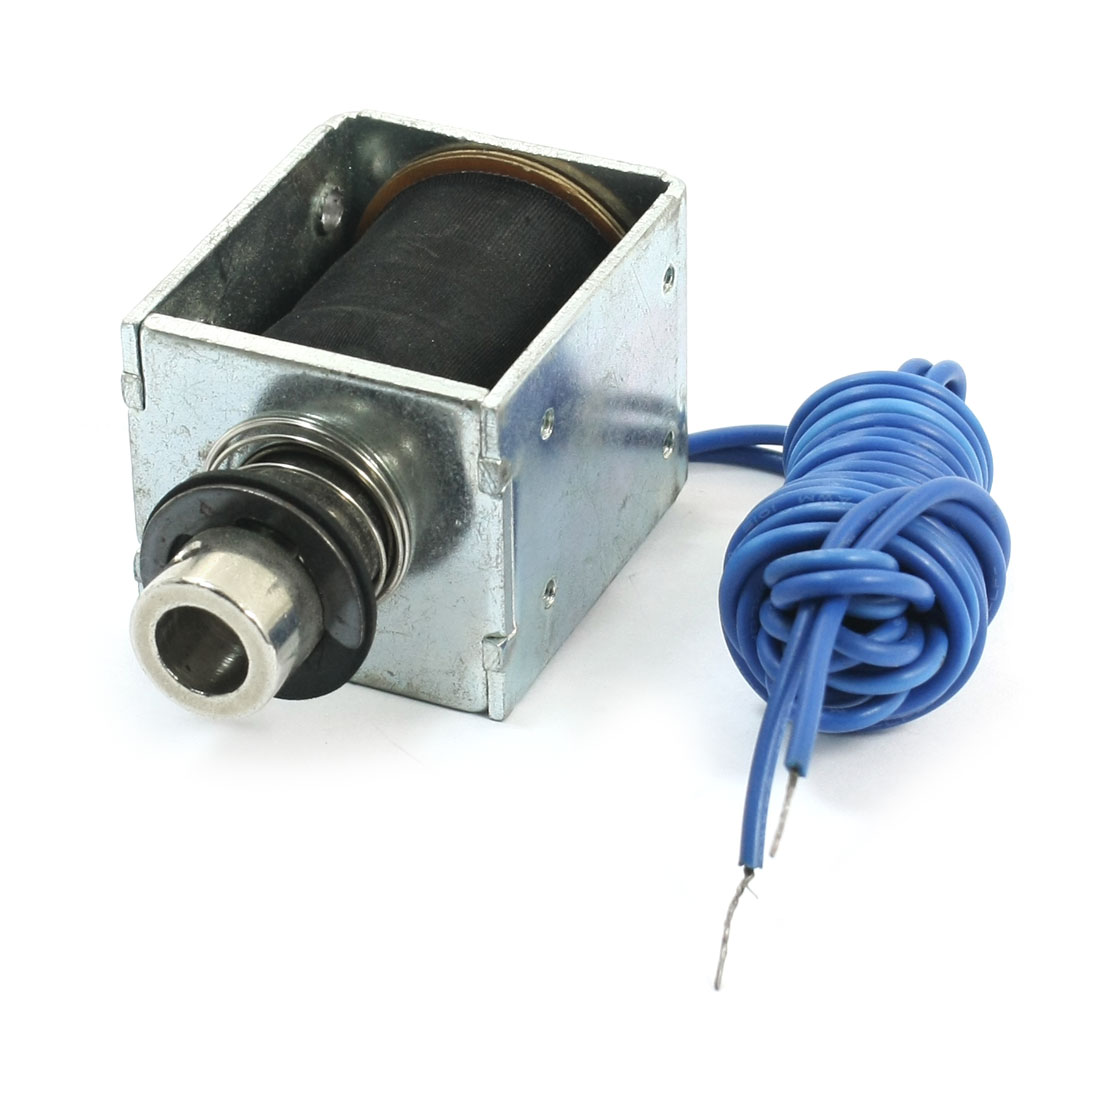 12mm Stroke 800g Force 2-Wire Connecting Open Frame Pull Type Spring Loaded Linear Motion Electric Lifting Solenoid Electromagnet DC 36V 36W